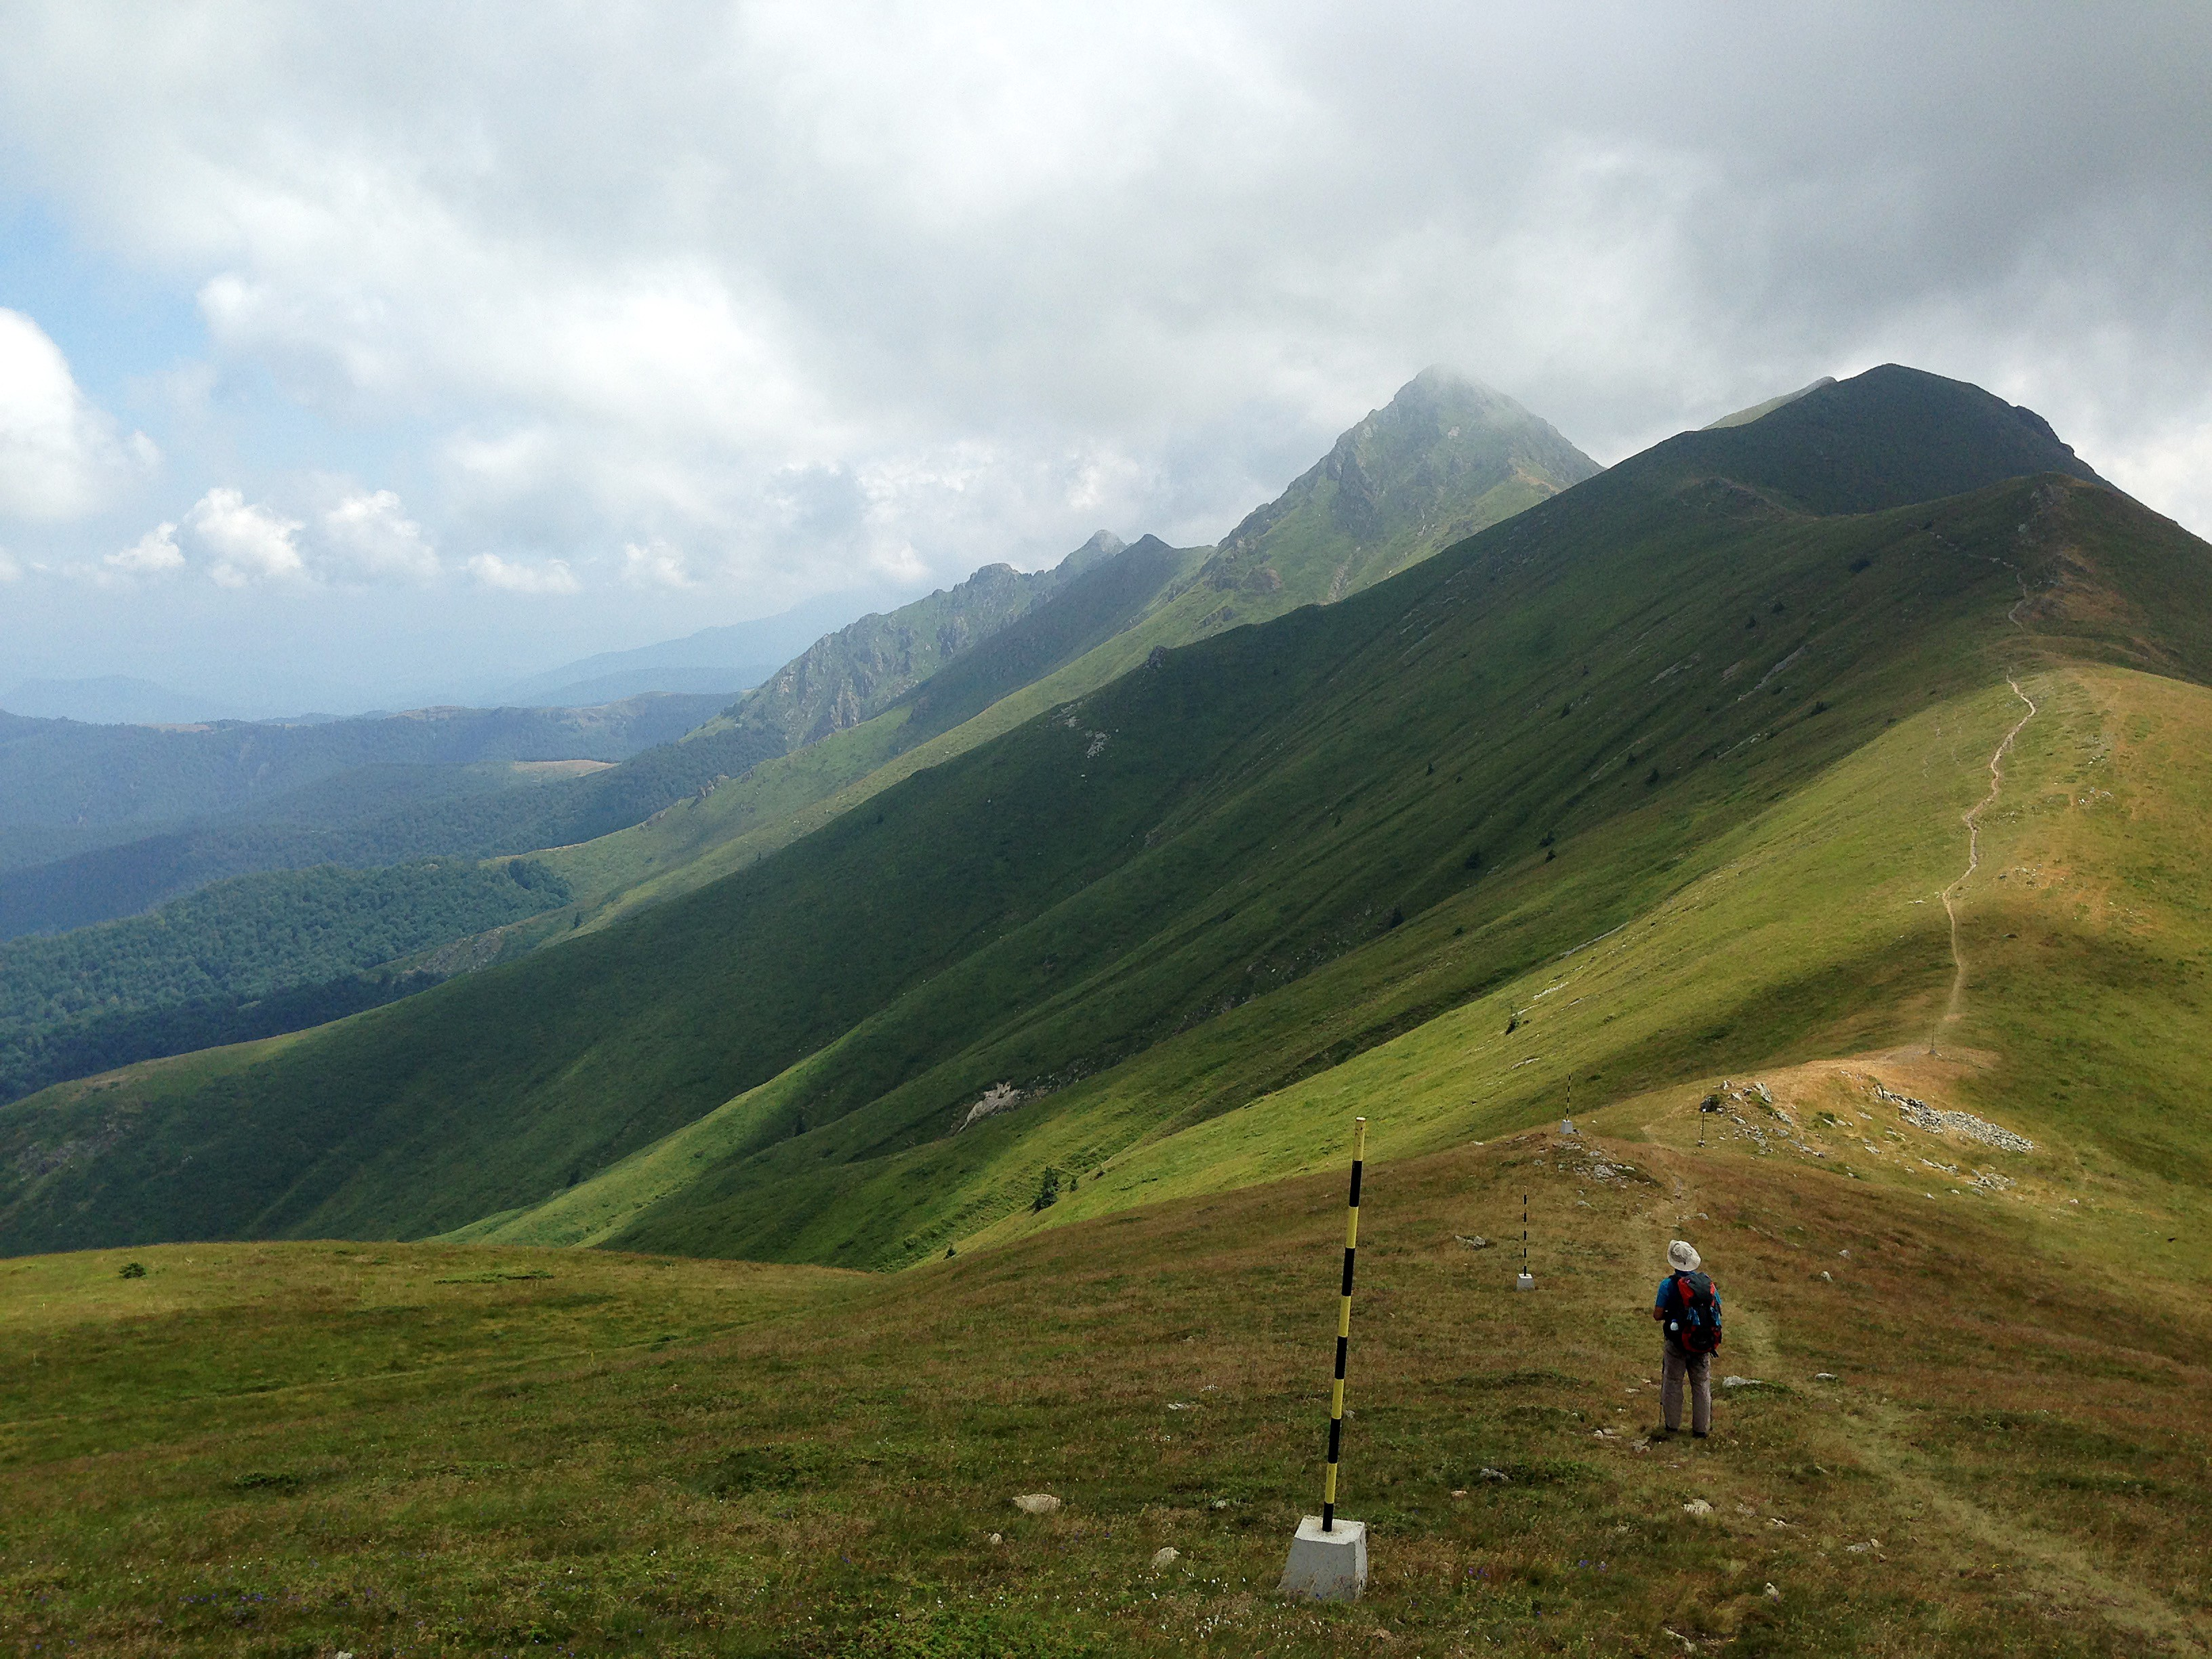 A green mountain range, in the foreground is a hiker. In the distance a path goes on the ridge, peaks are in clouds.